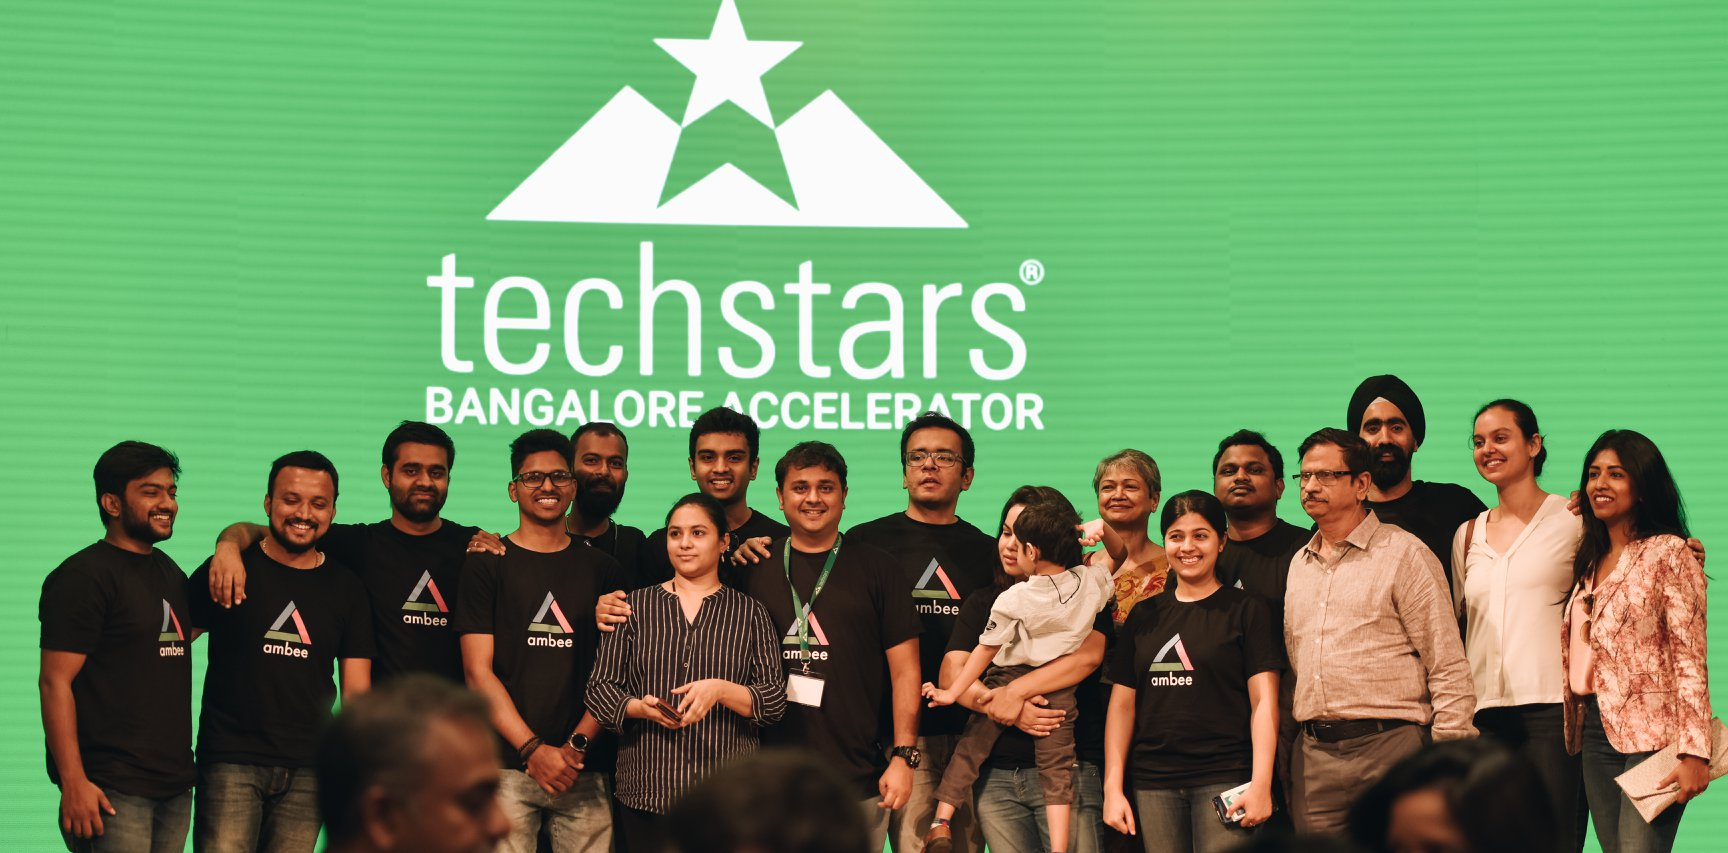 Team Ambee in TechStars event